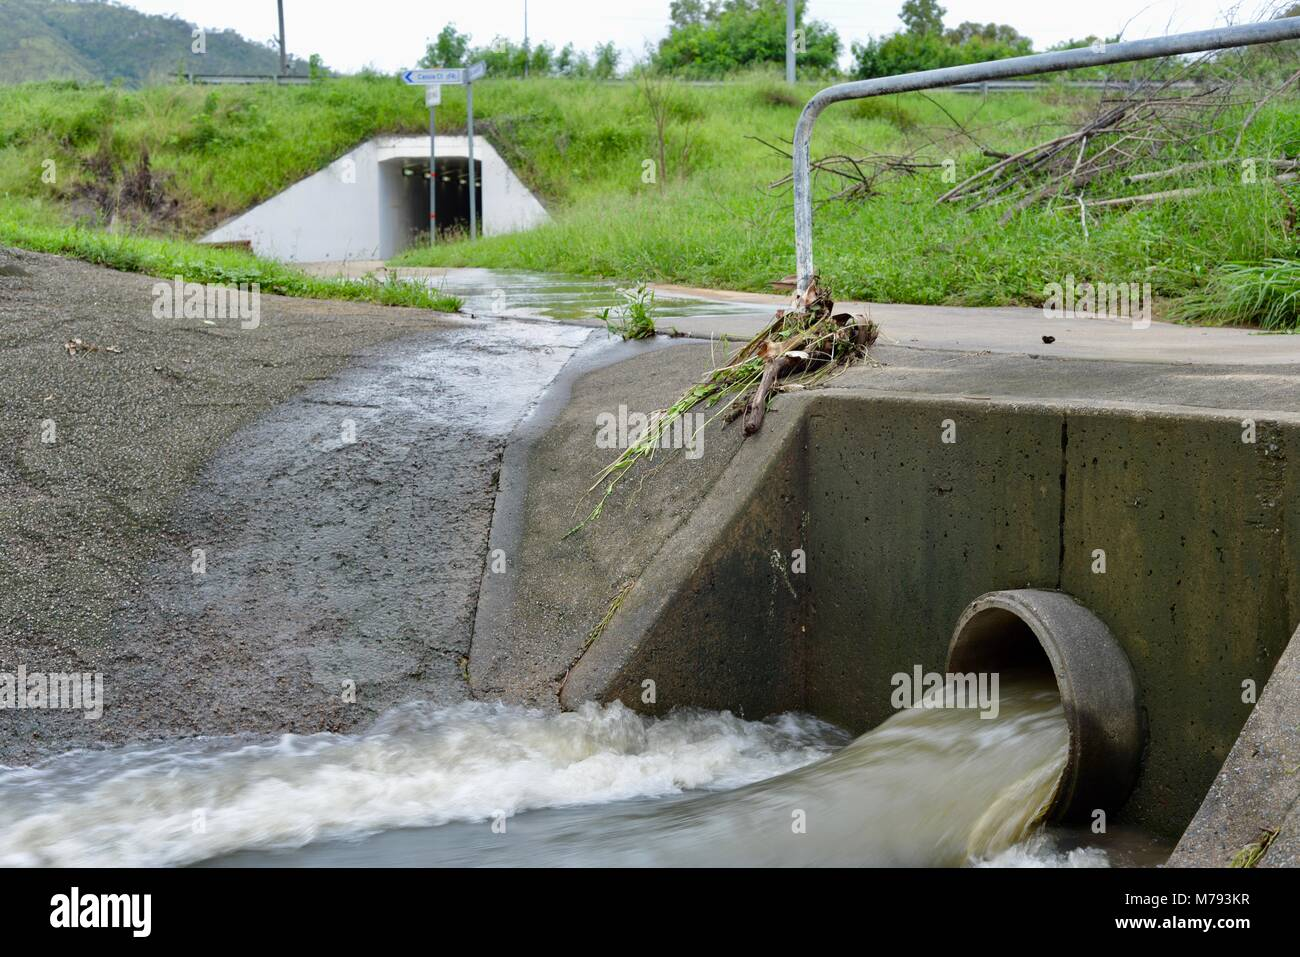 Water gushes out of a storm water drain after storms and